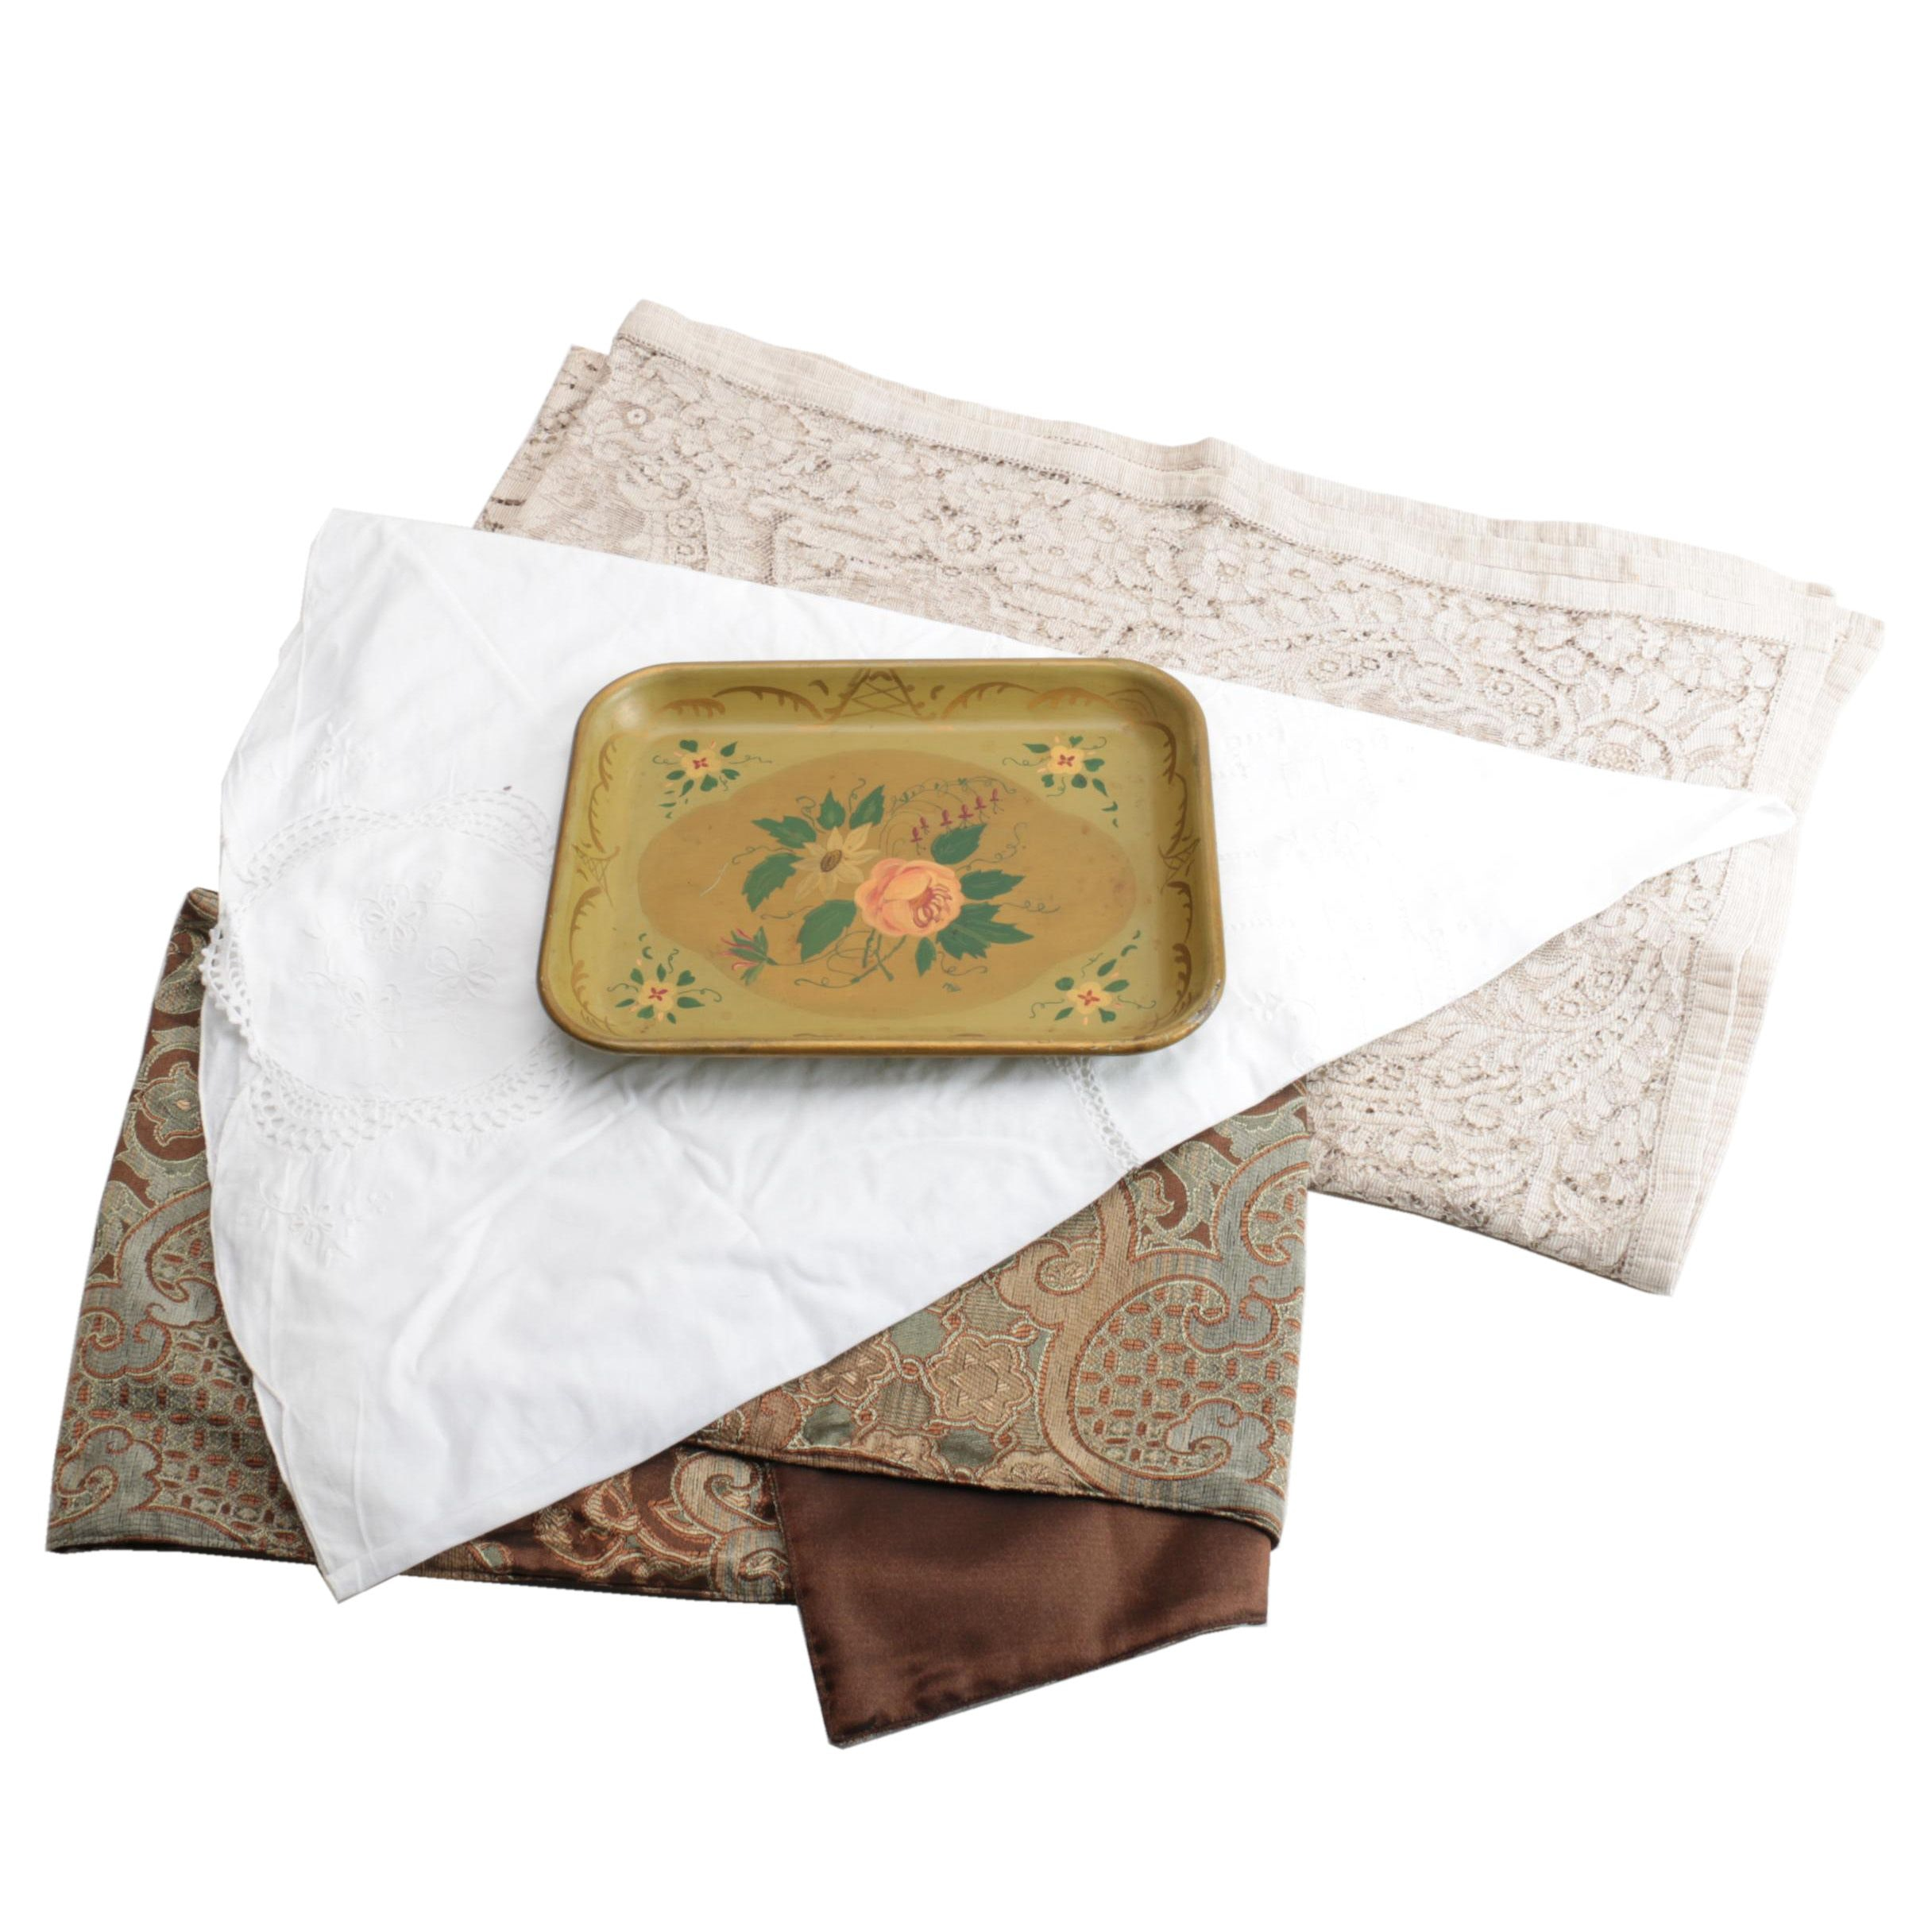 Table Linens and a Serving Tray